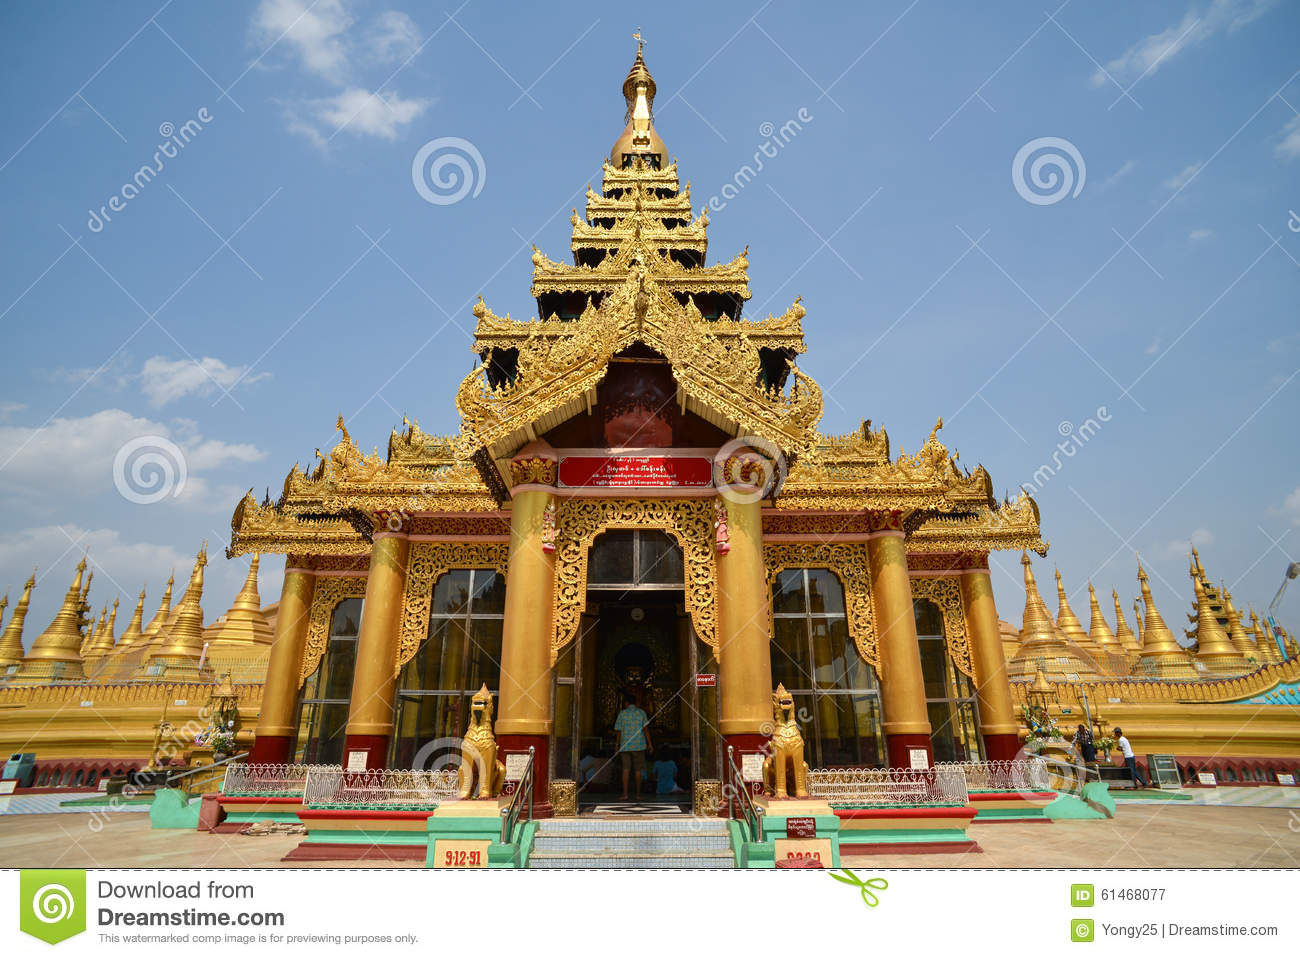 Bago Myanmar  city photos gallery : Bago, Myanmar May 3, 2014: The Shwemawdaw Pagoda with prayers and ...